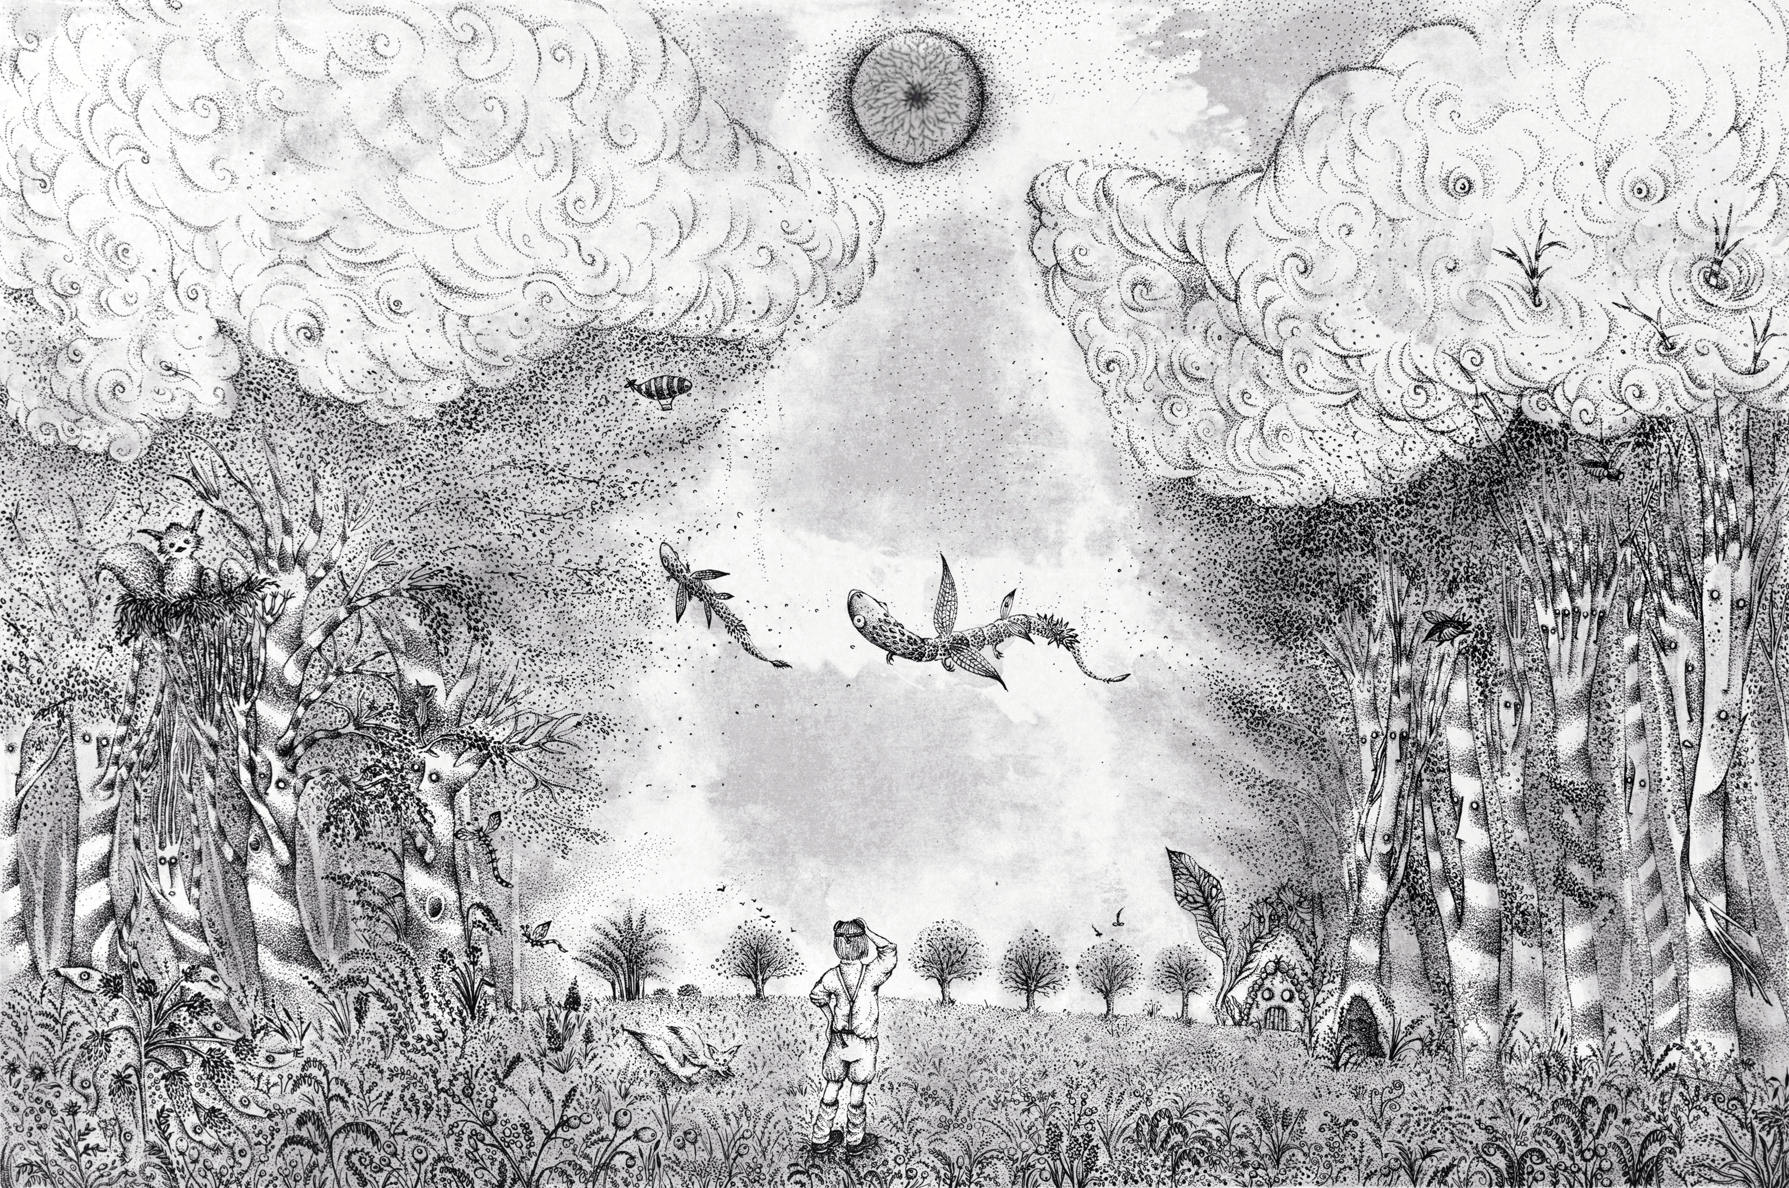 『少年と光の木』色をなくした光の木 A boy and a tree of light - A world without color- w600×h400mm 2014 lithograph